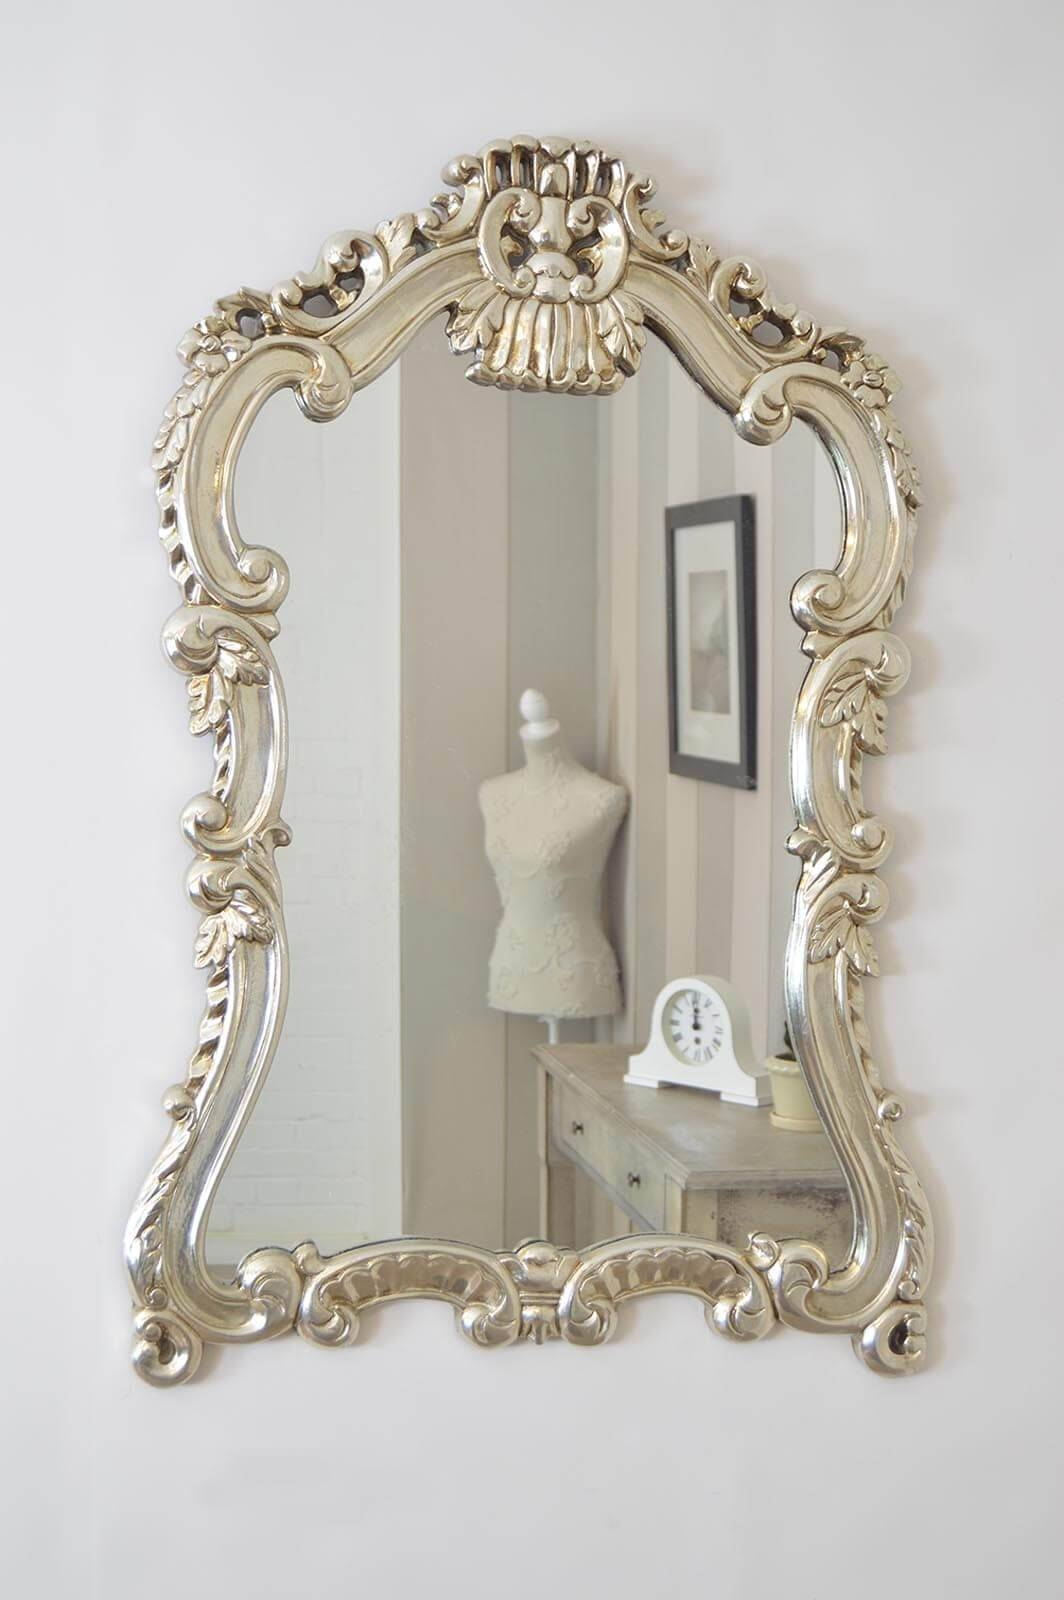 Decorative Ornate Mirrors : Wall Vs Floor, Which One Better with Ornate Wall Mirrors (Image 11 of 25)